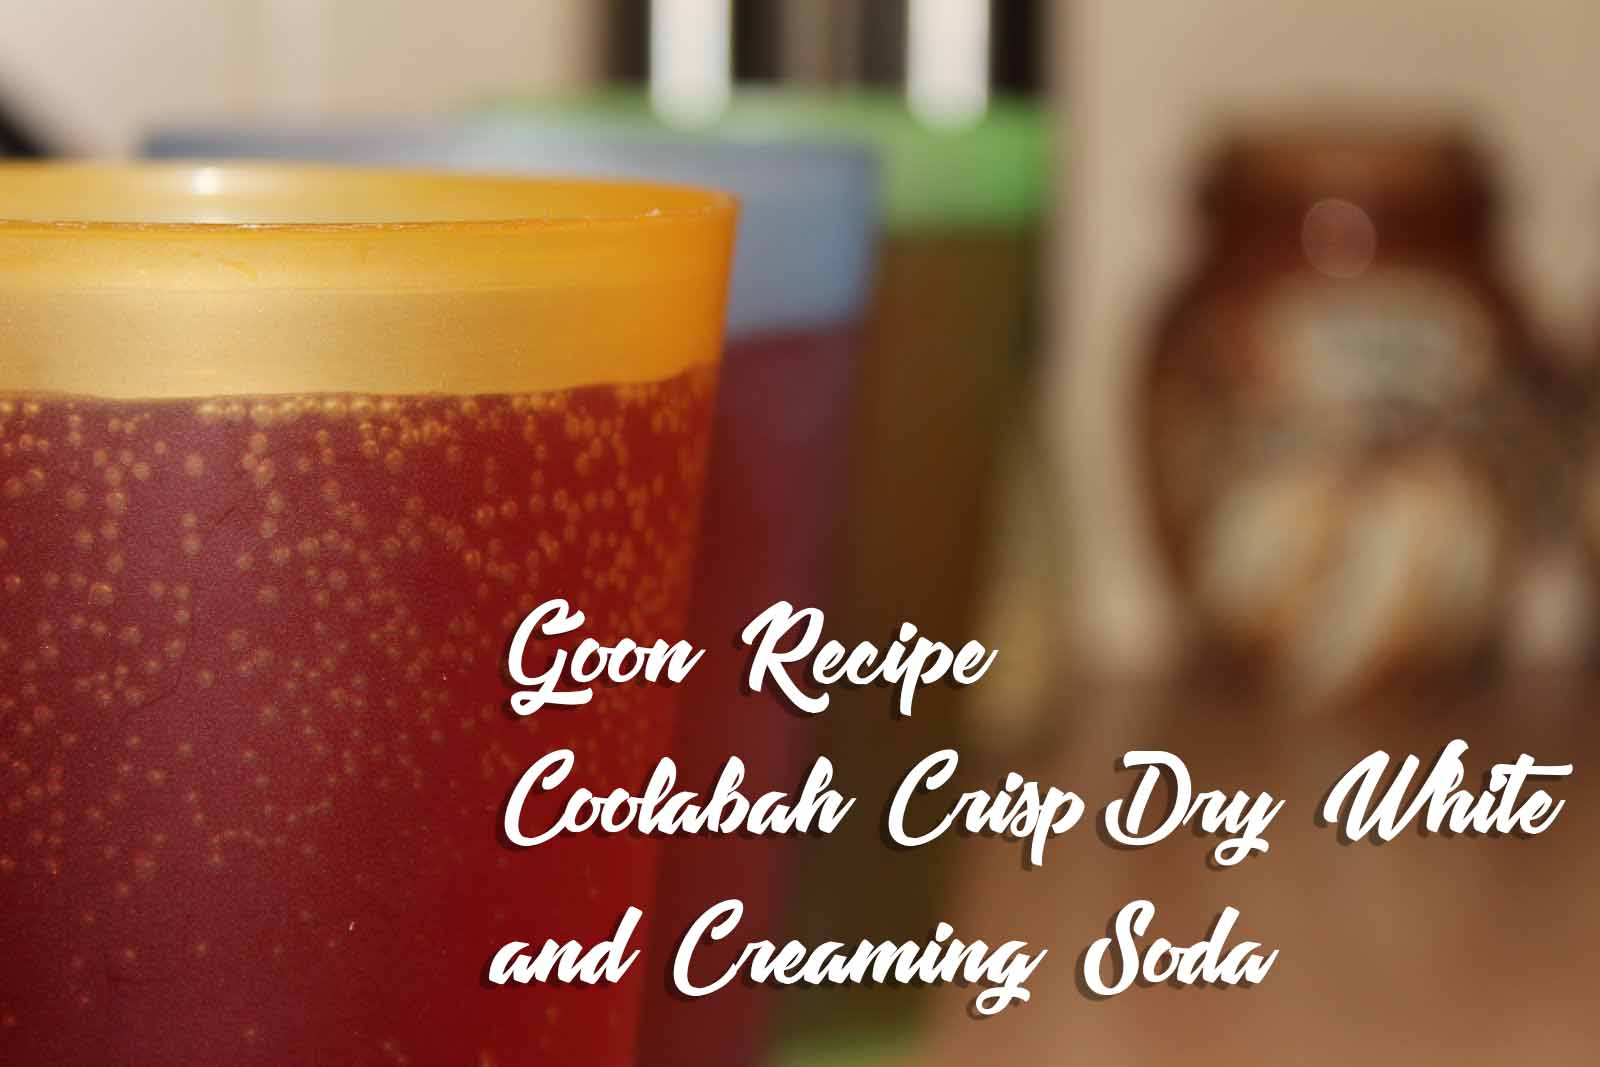 Coolabah_Crisp_Dry_White_and_Creaming_Soda_Goon_Recipe